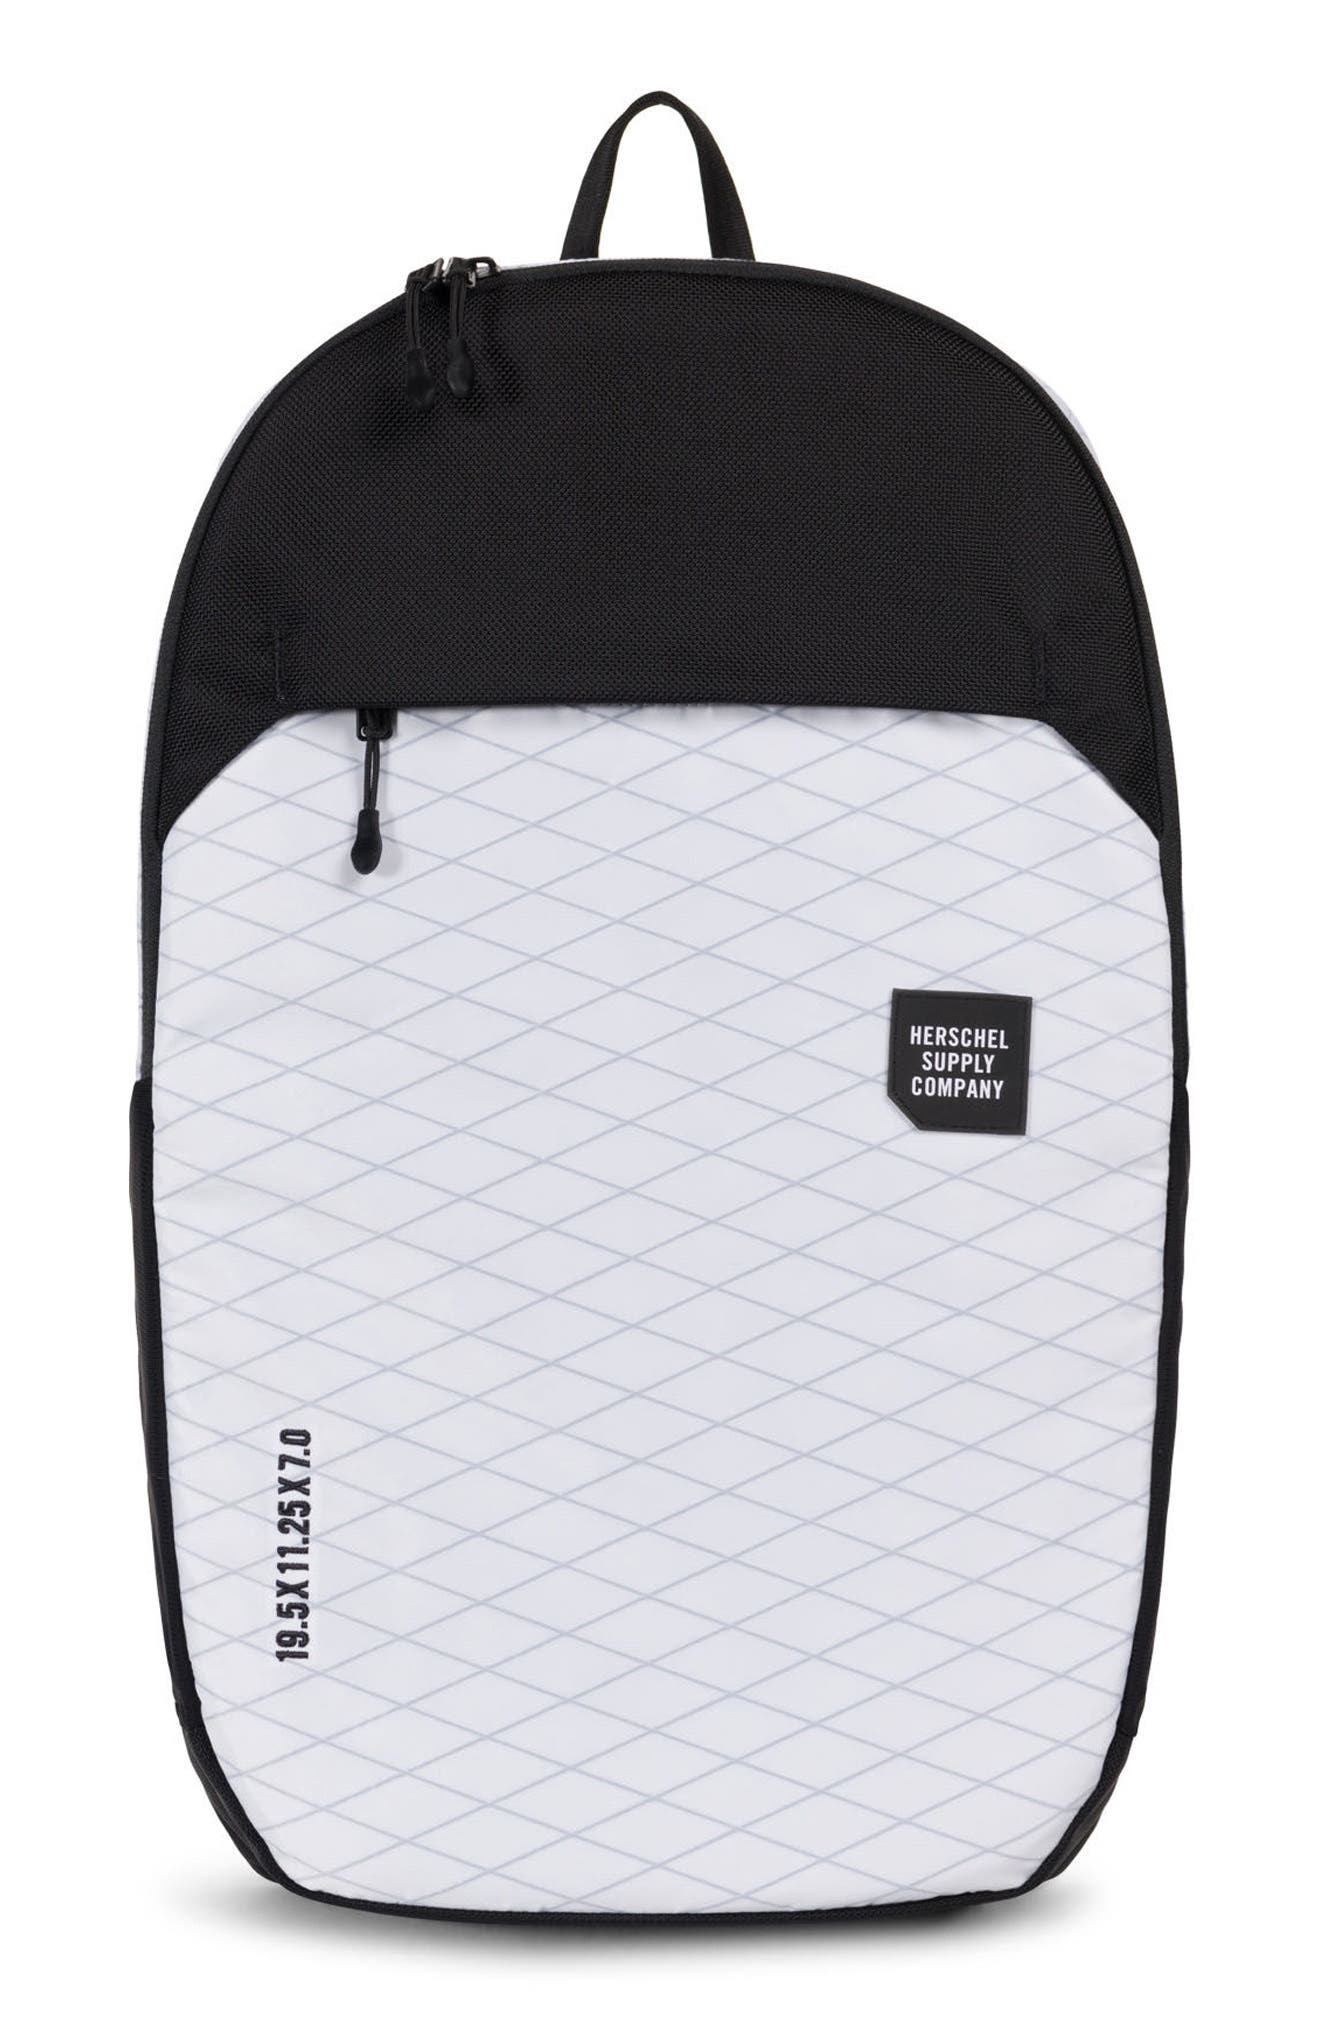 Trail Sailcloth Mammoth Large Backpack,                         Main,                         color, White/ Black